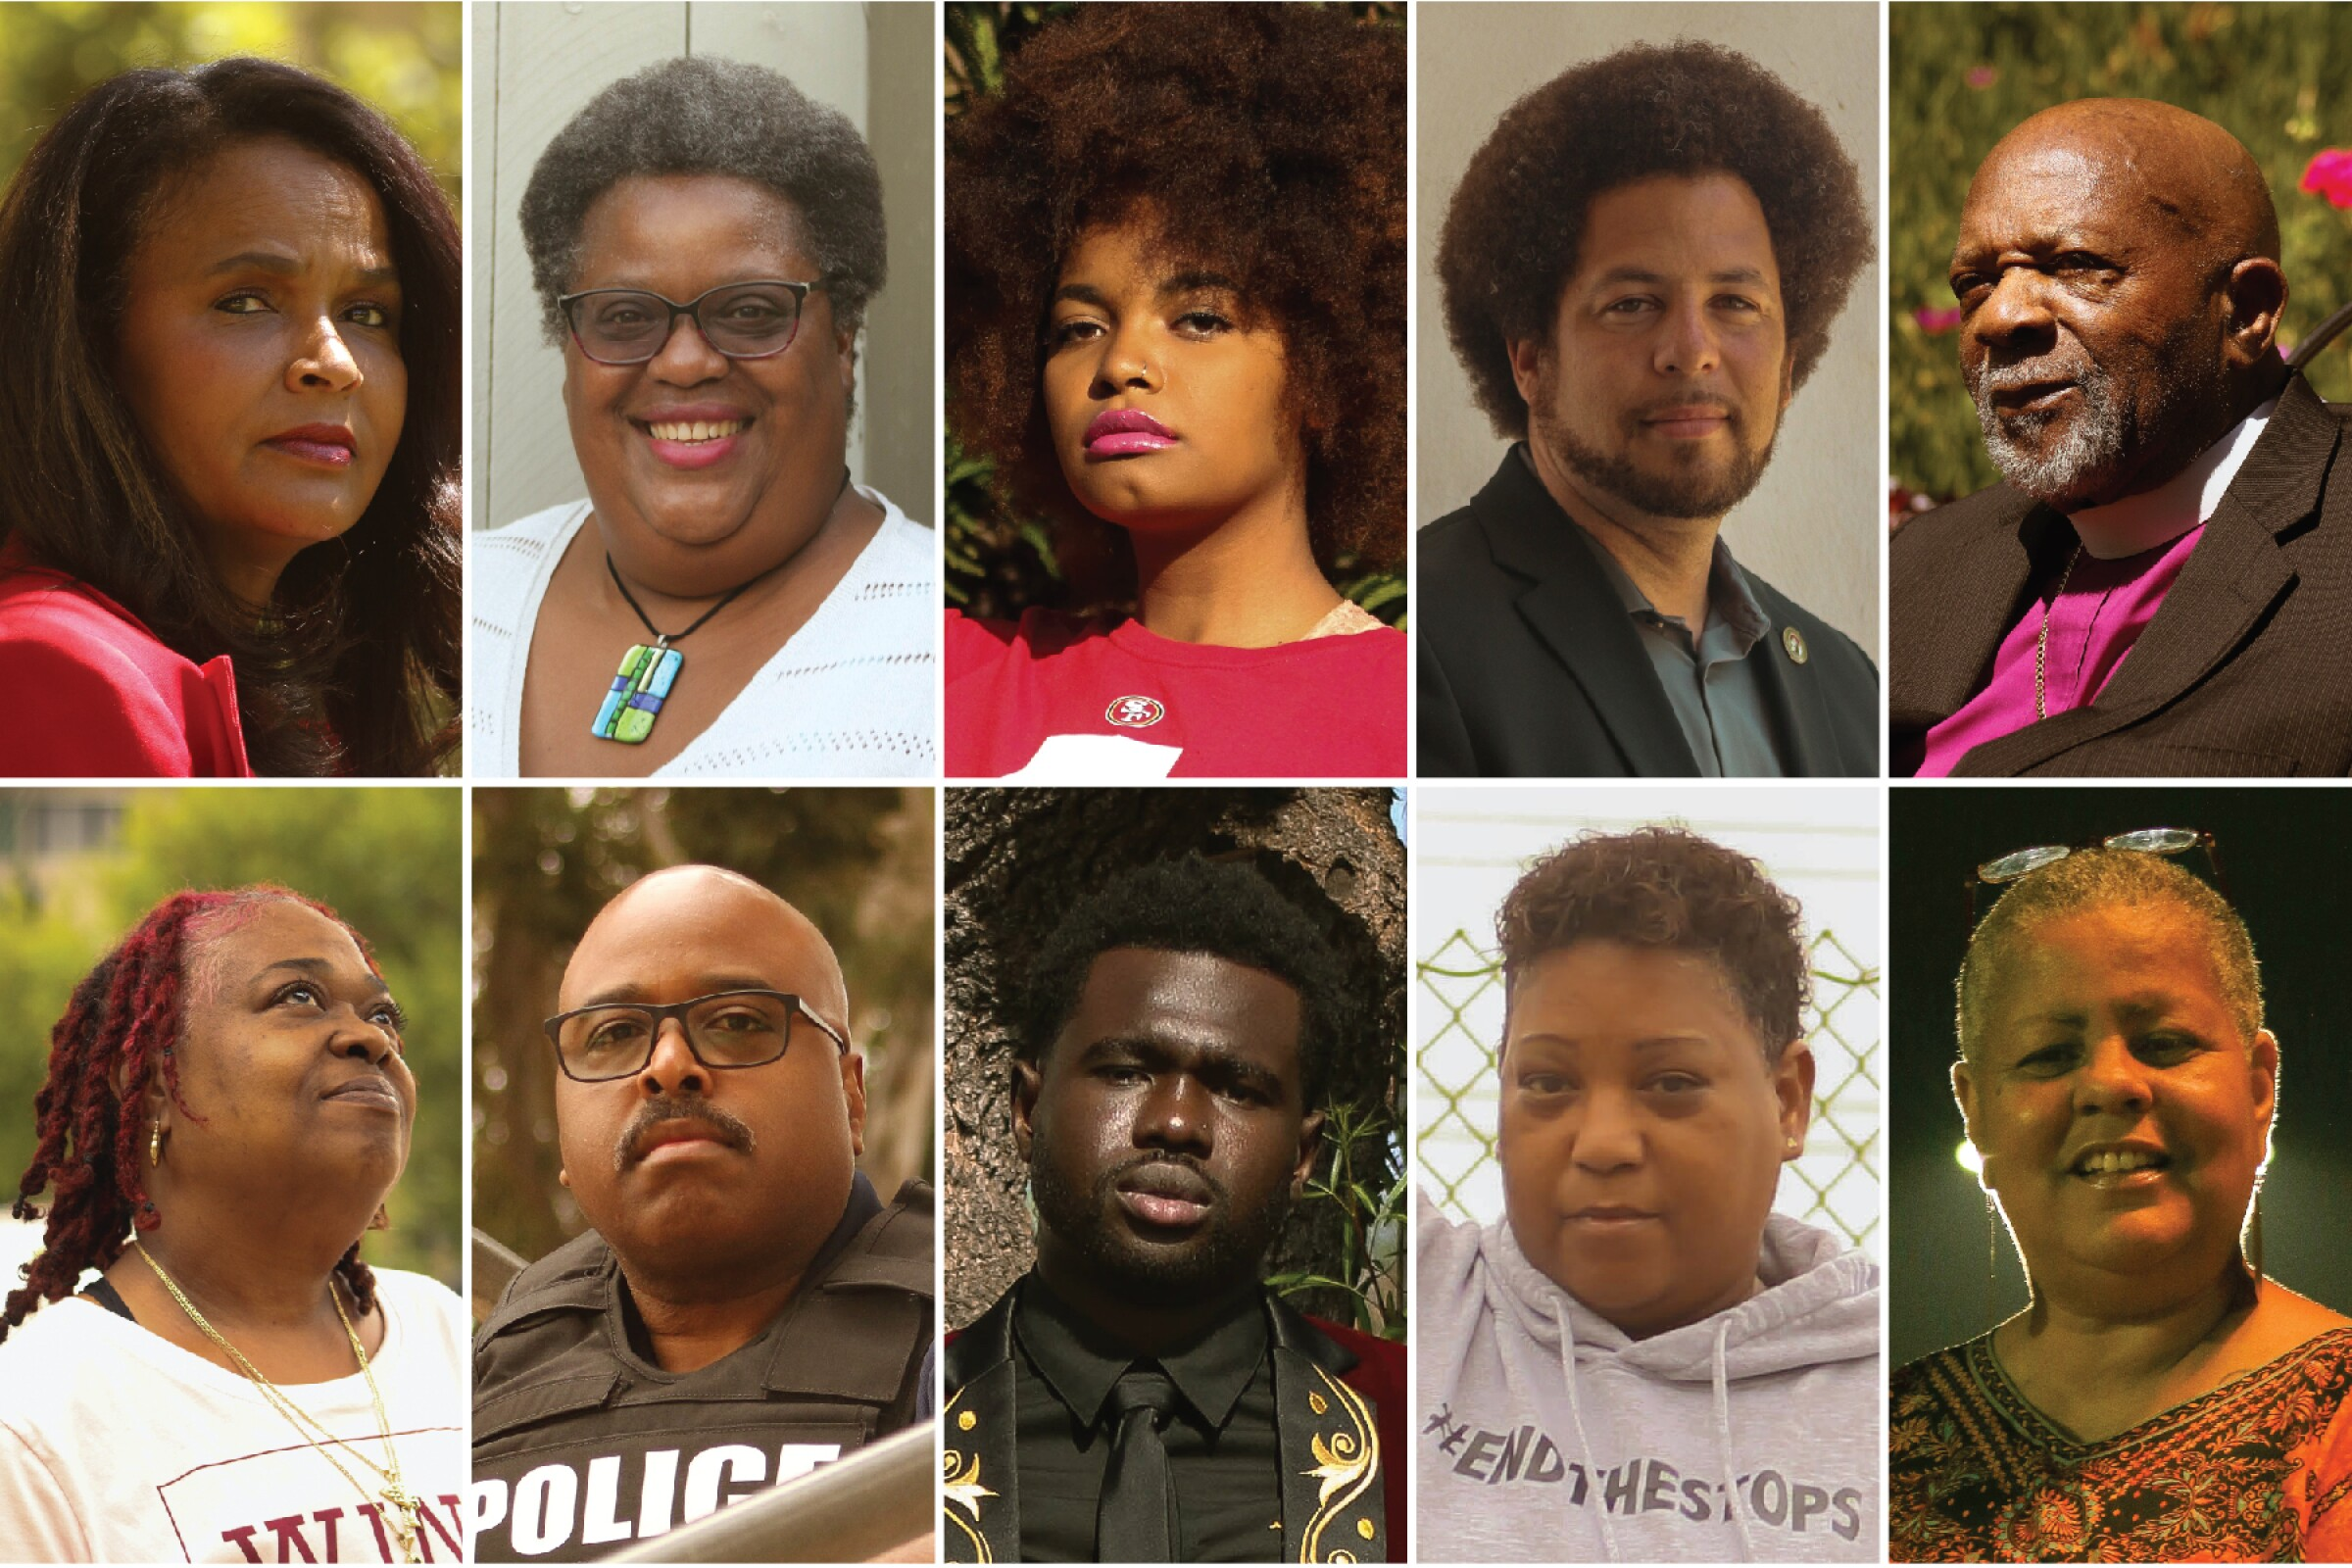 Community voices on racism in America